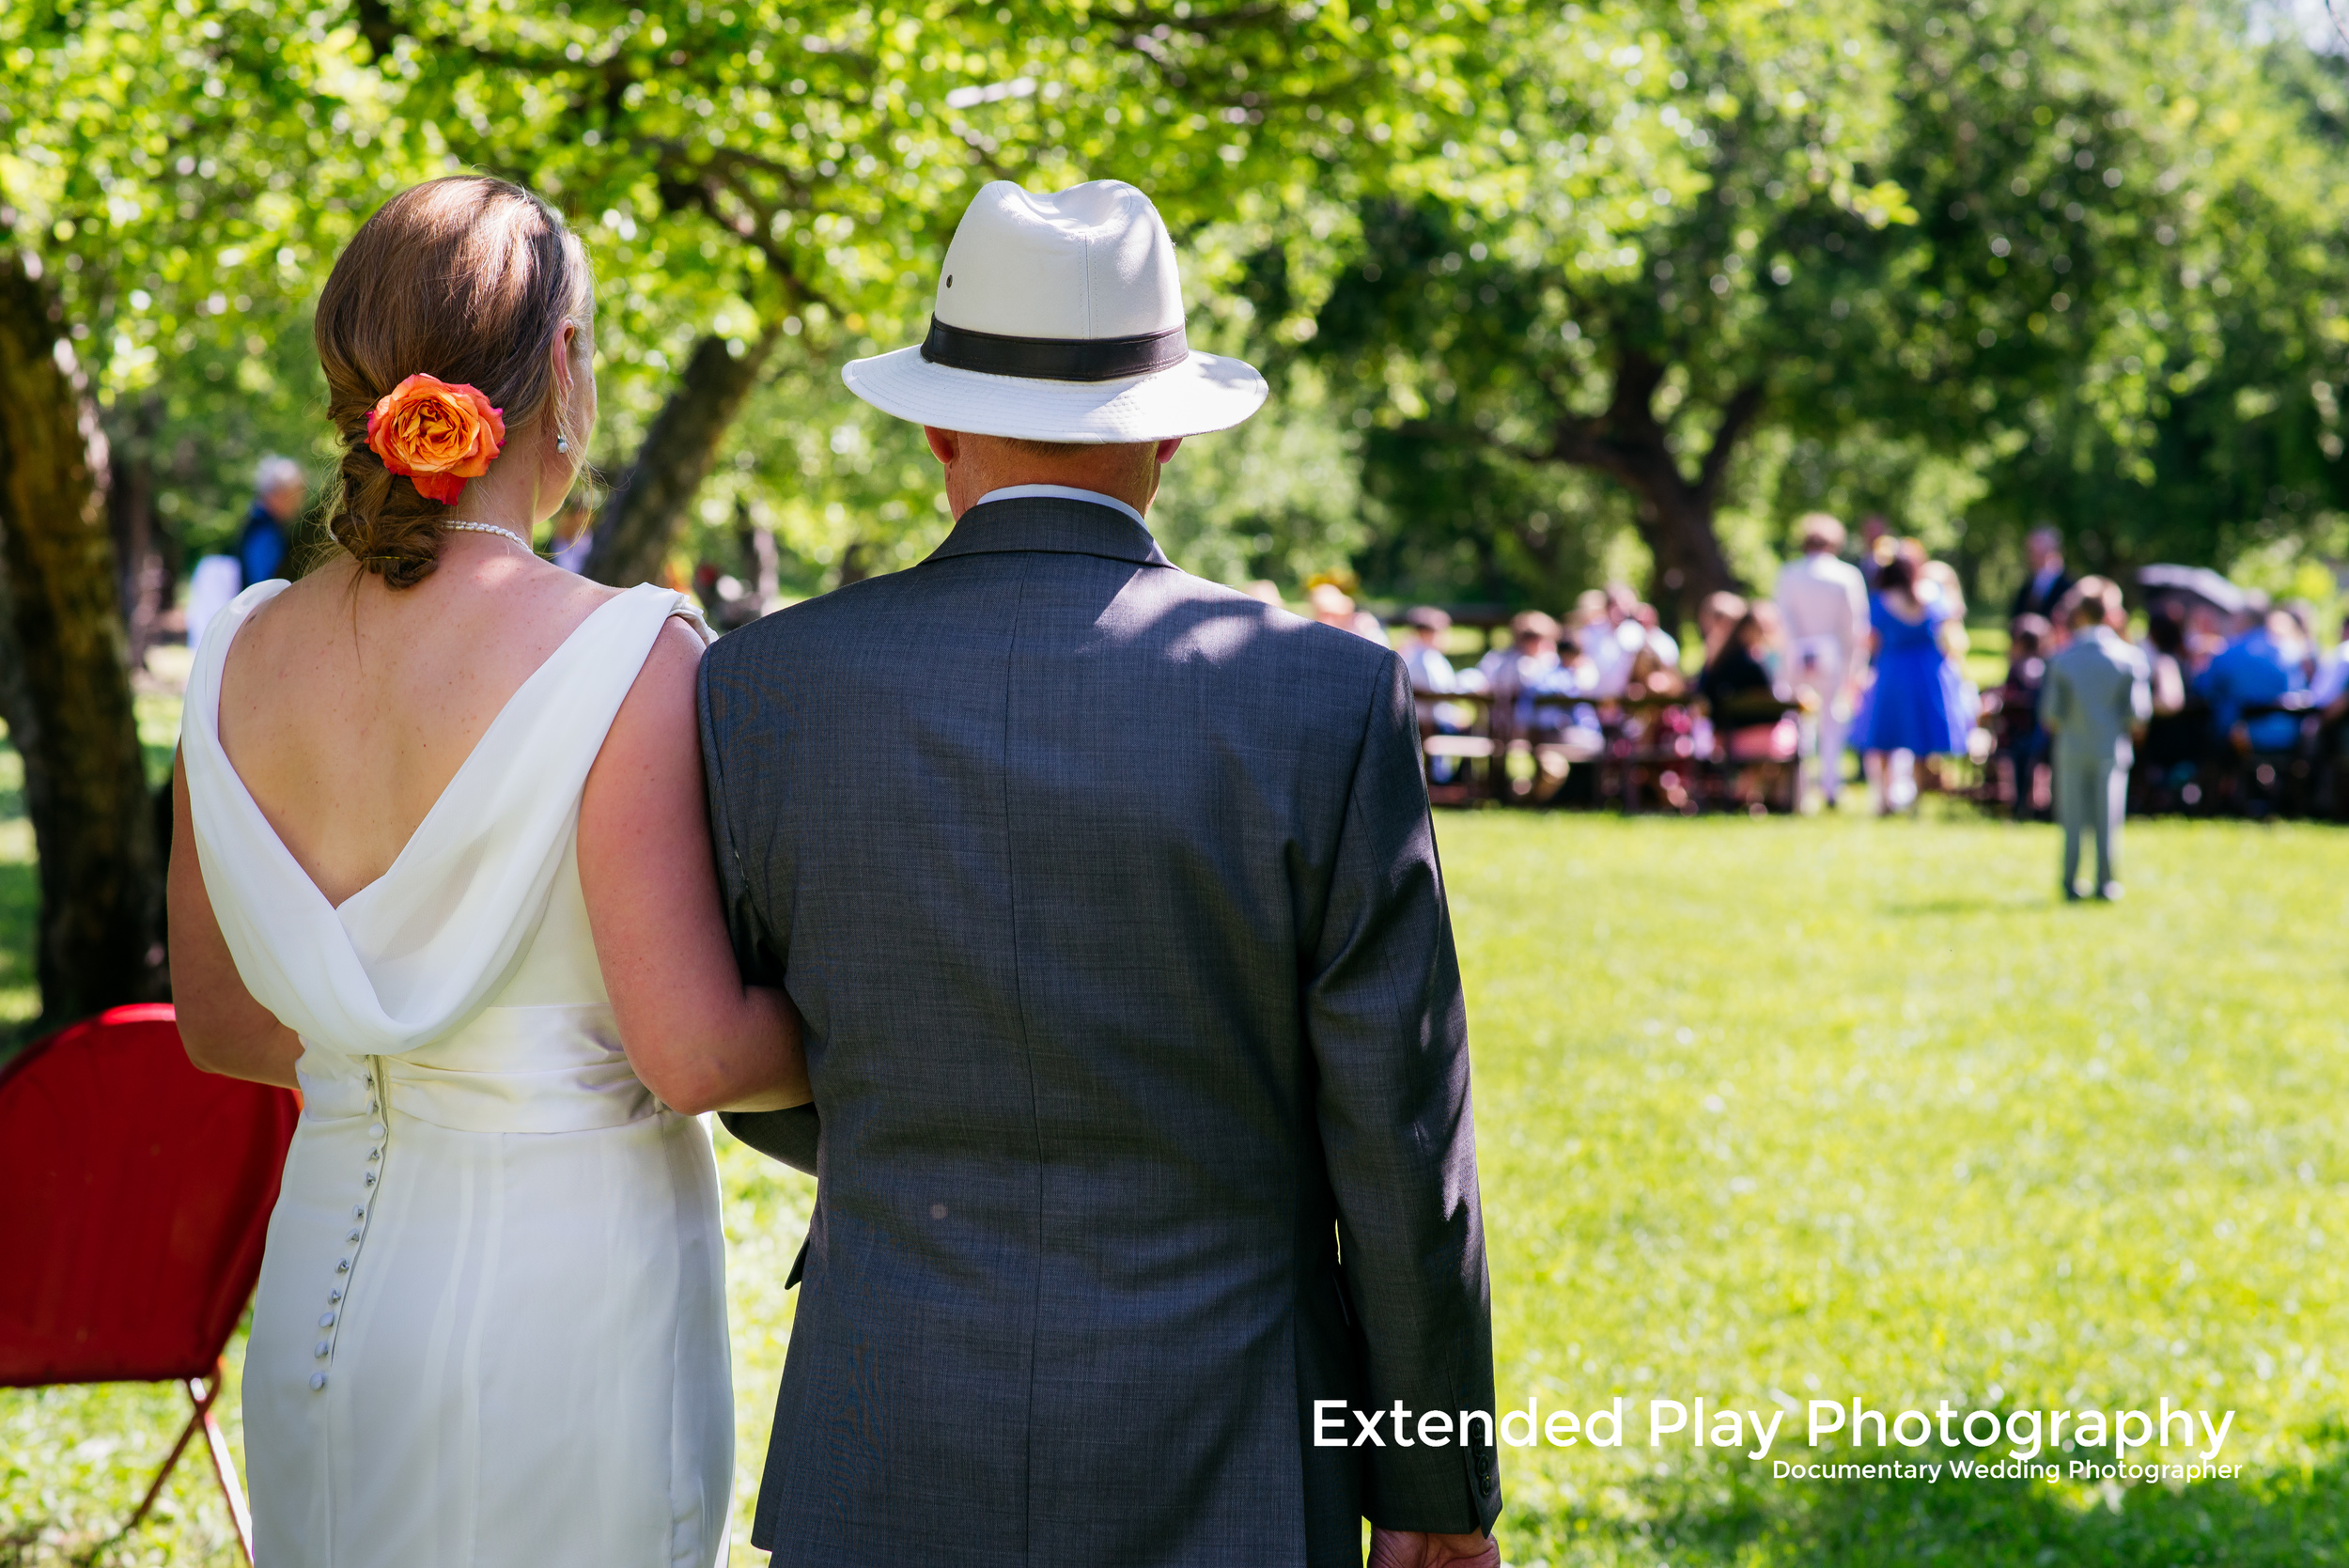 Extended Play Photography Chimayo Wedding-13.JPG